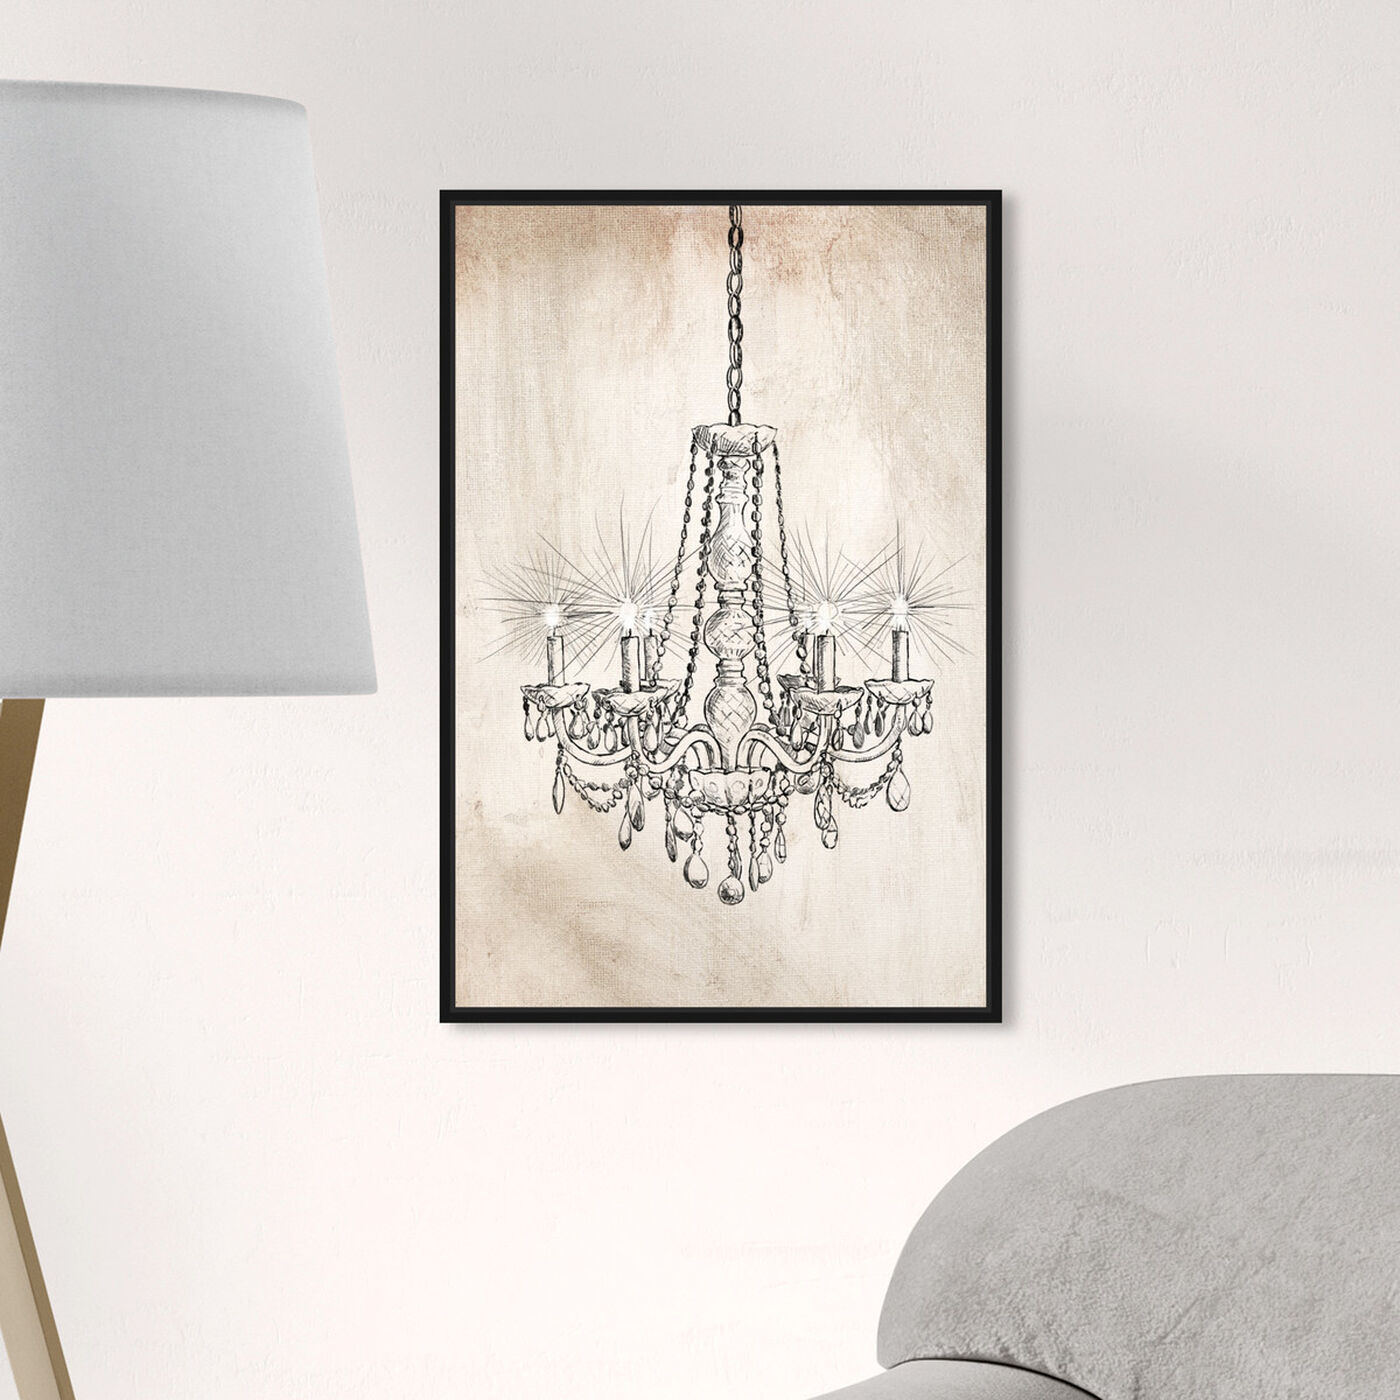 Hanging view of Cantora featuring fashion and glam and chandeliers art.